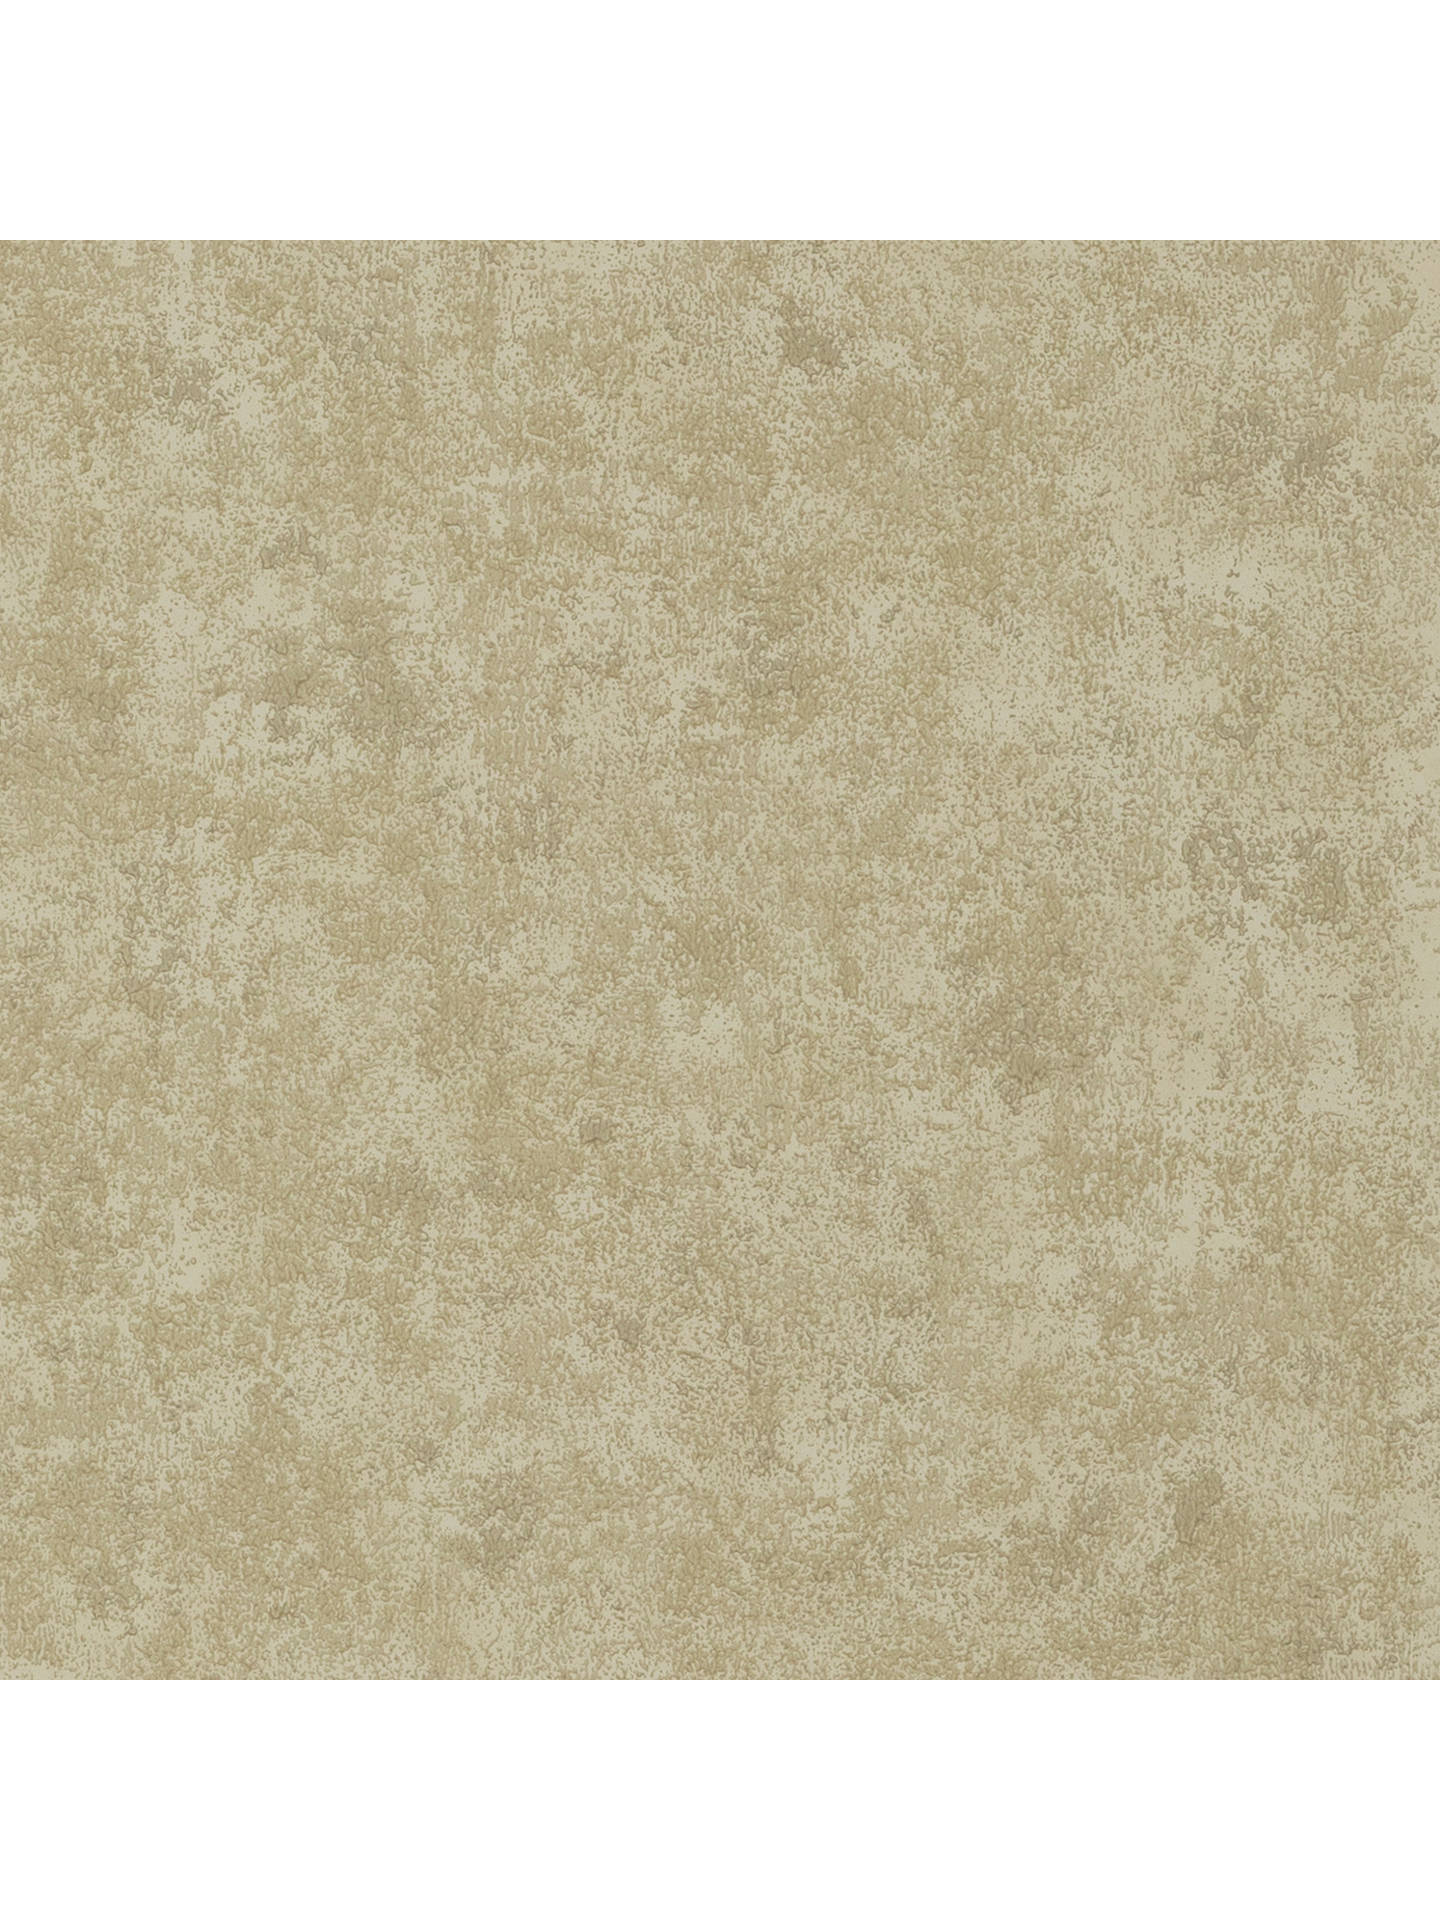 BuyMulberry Home Fresco Wallpaper, FG091.N102.0 Online at johnlewis.com